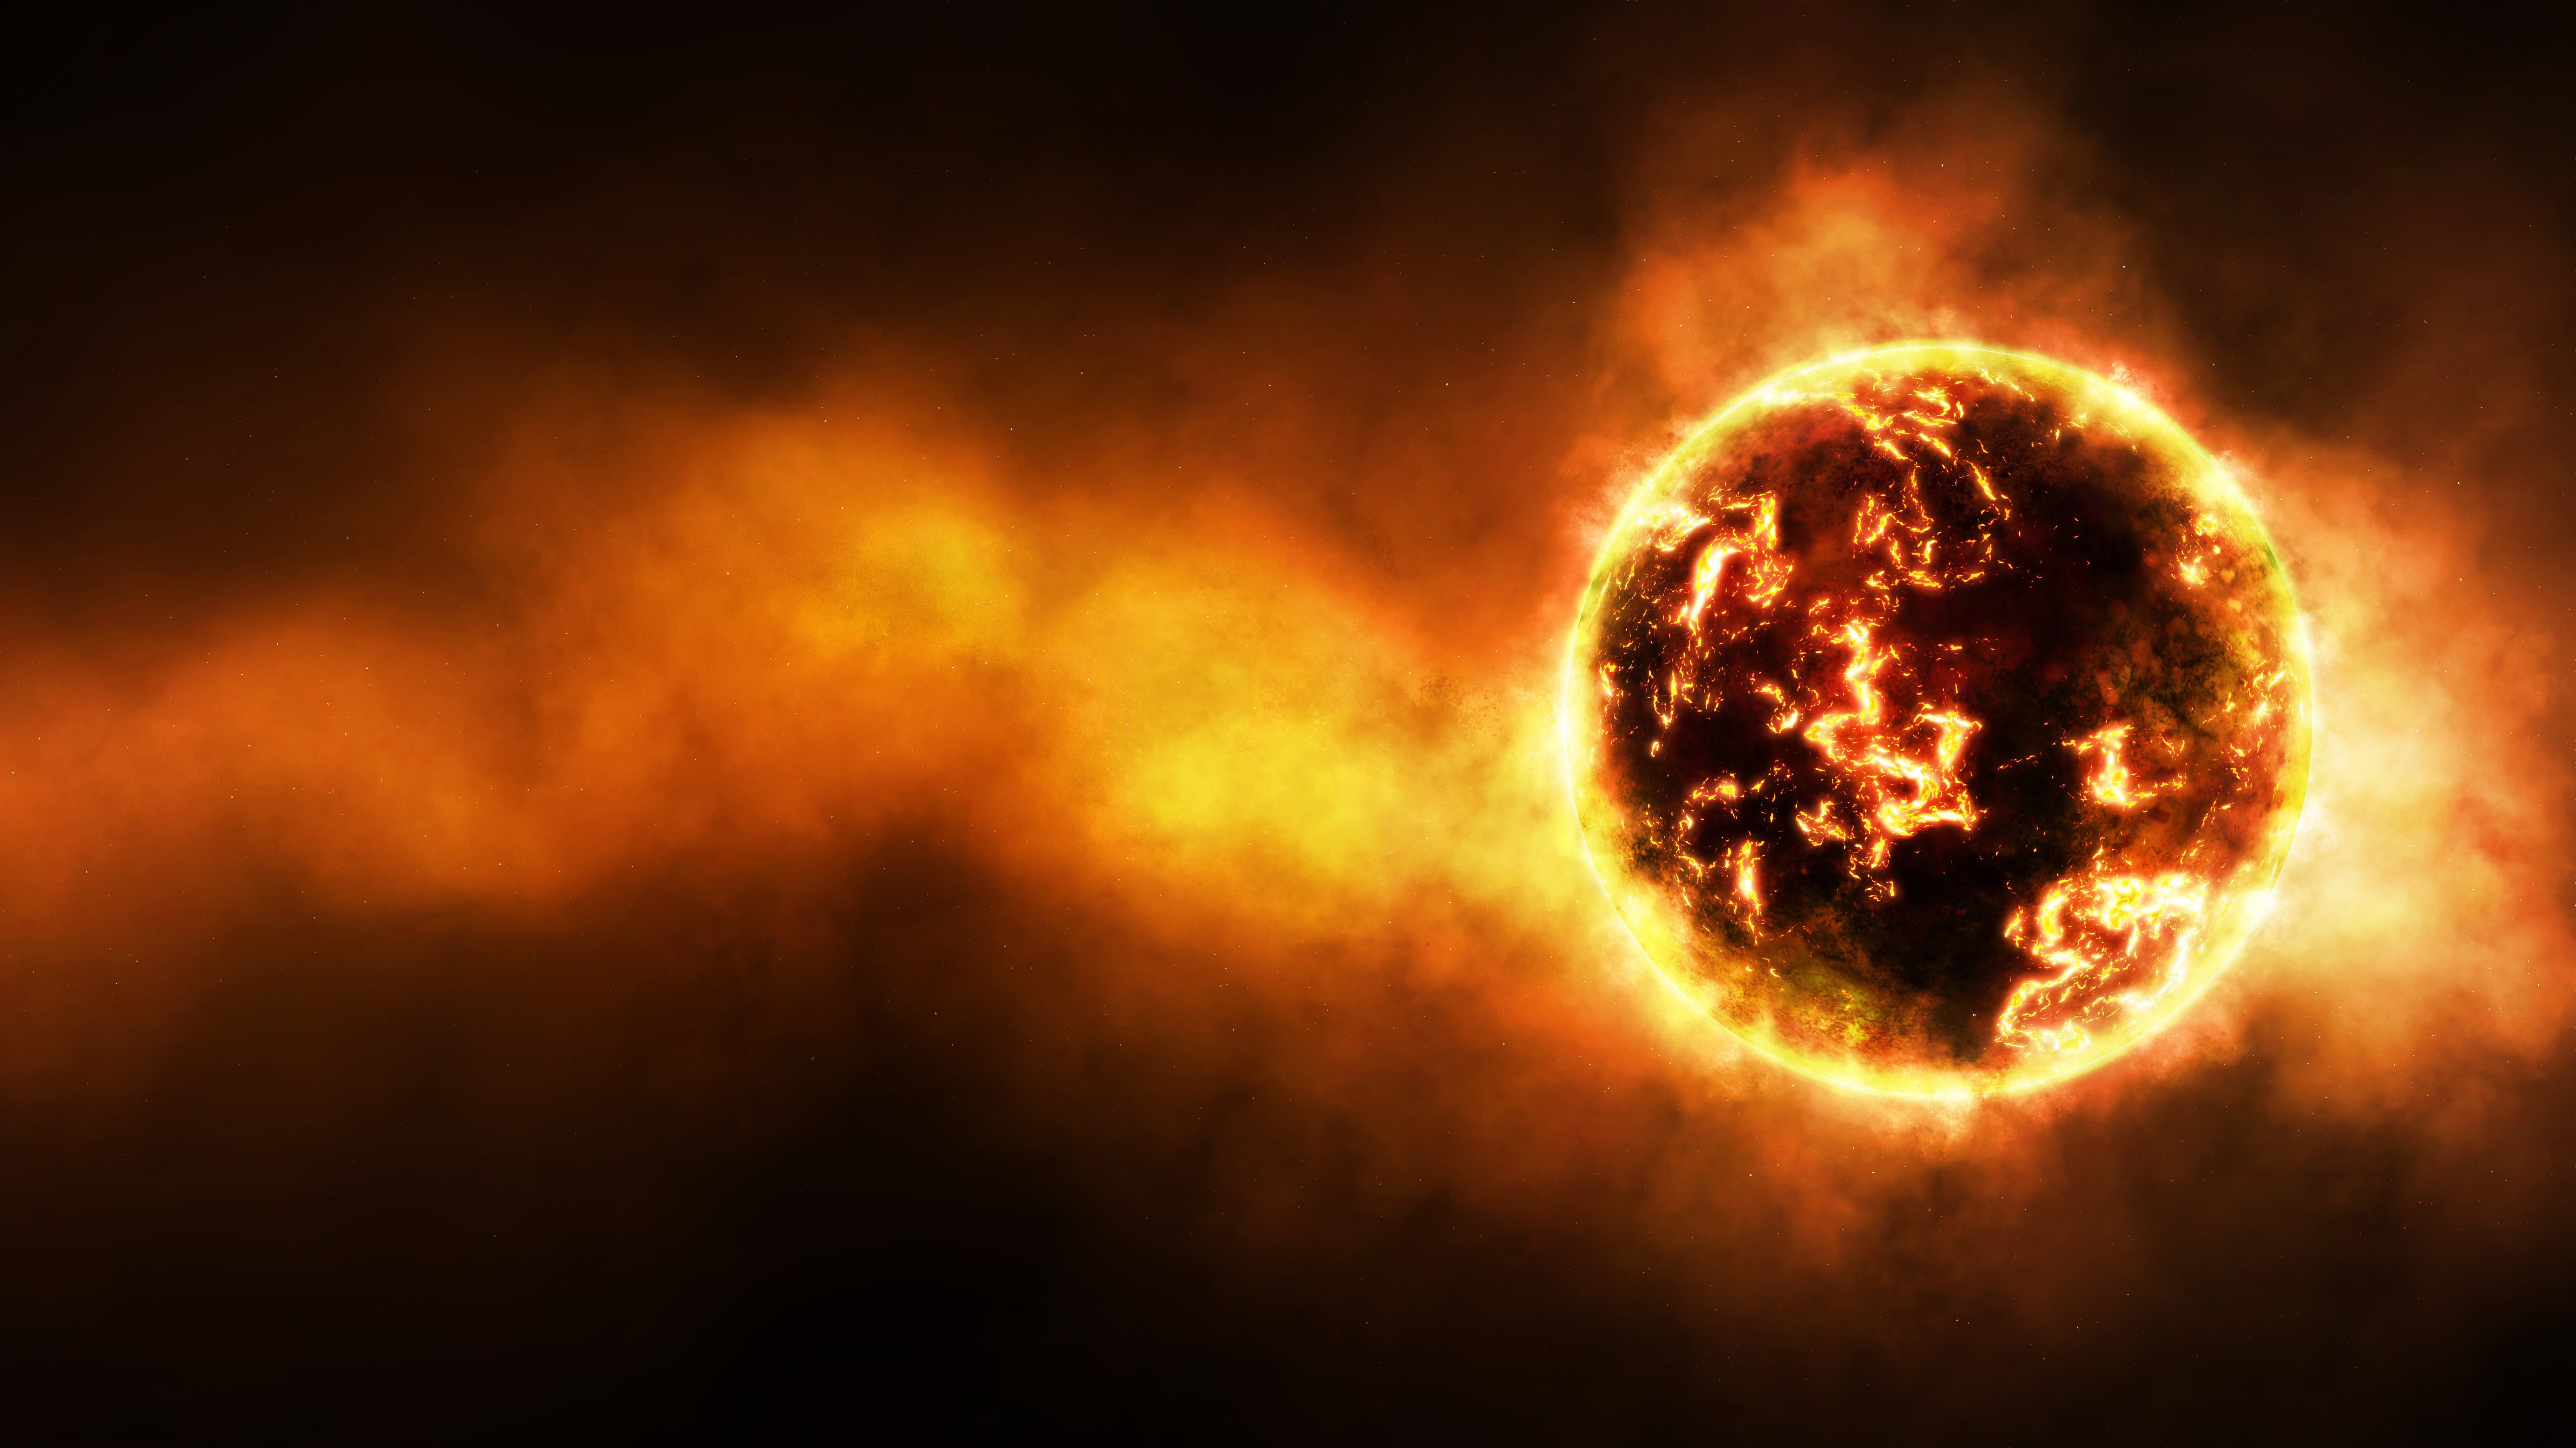 outer space planets fire glow fireball Wallpapers 5337x3000